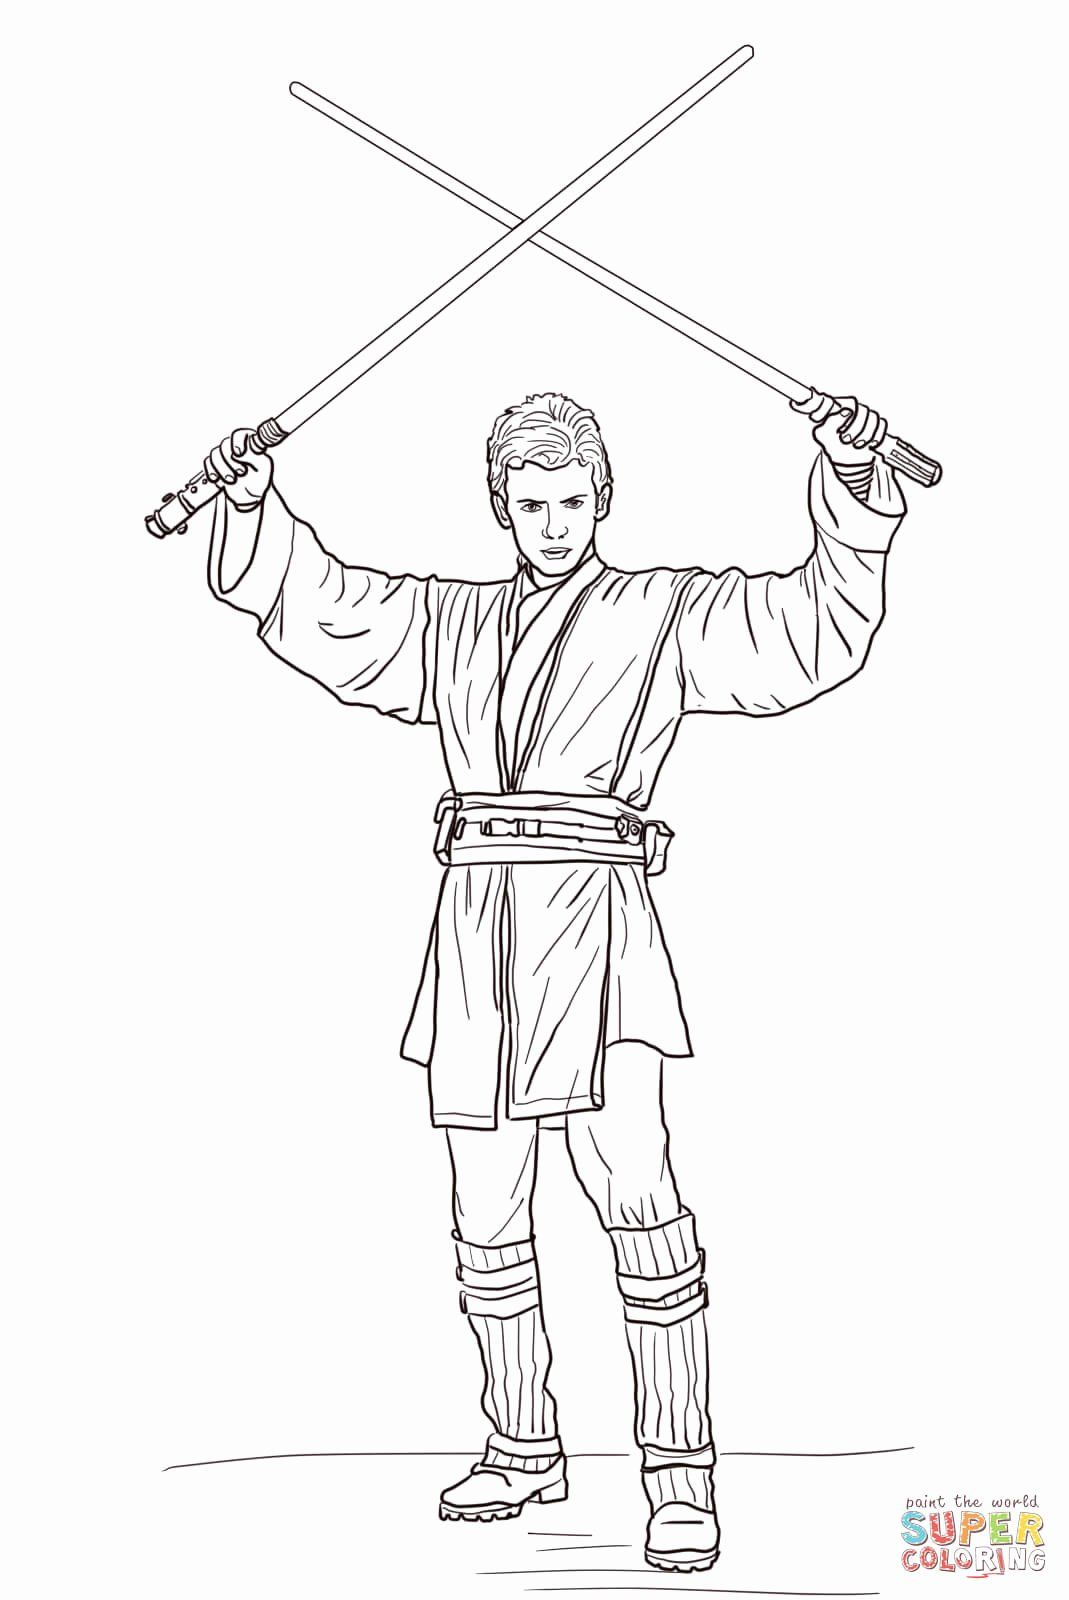 Star Destroyer Coloring Pages Luxury Similiar Anakin Skywalker Coloring Pages Printable Keywords In 2020 Star Wars Coloring Book Star Wars Drawings Star Wars Colors